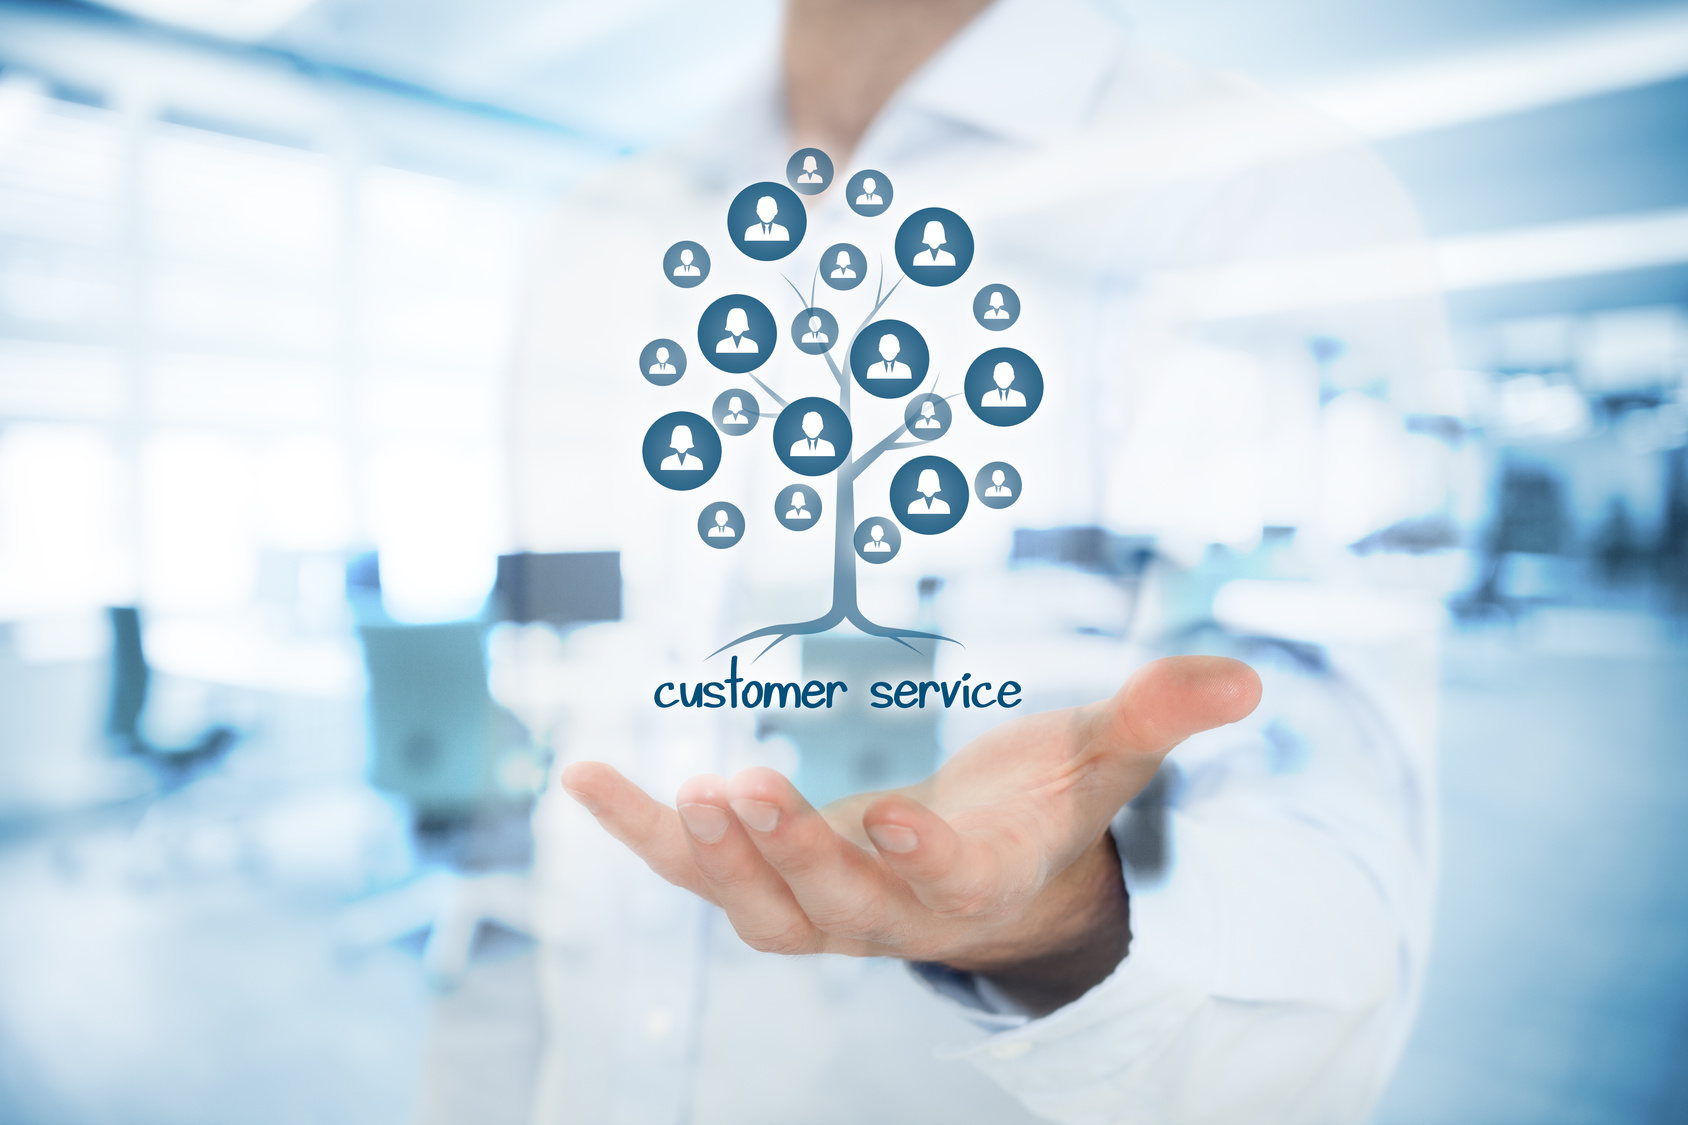 5 customer service lessons every business needs to learn